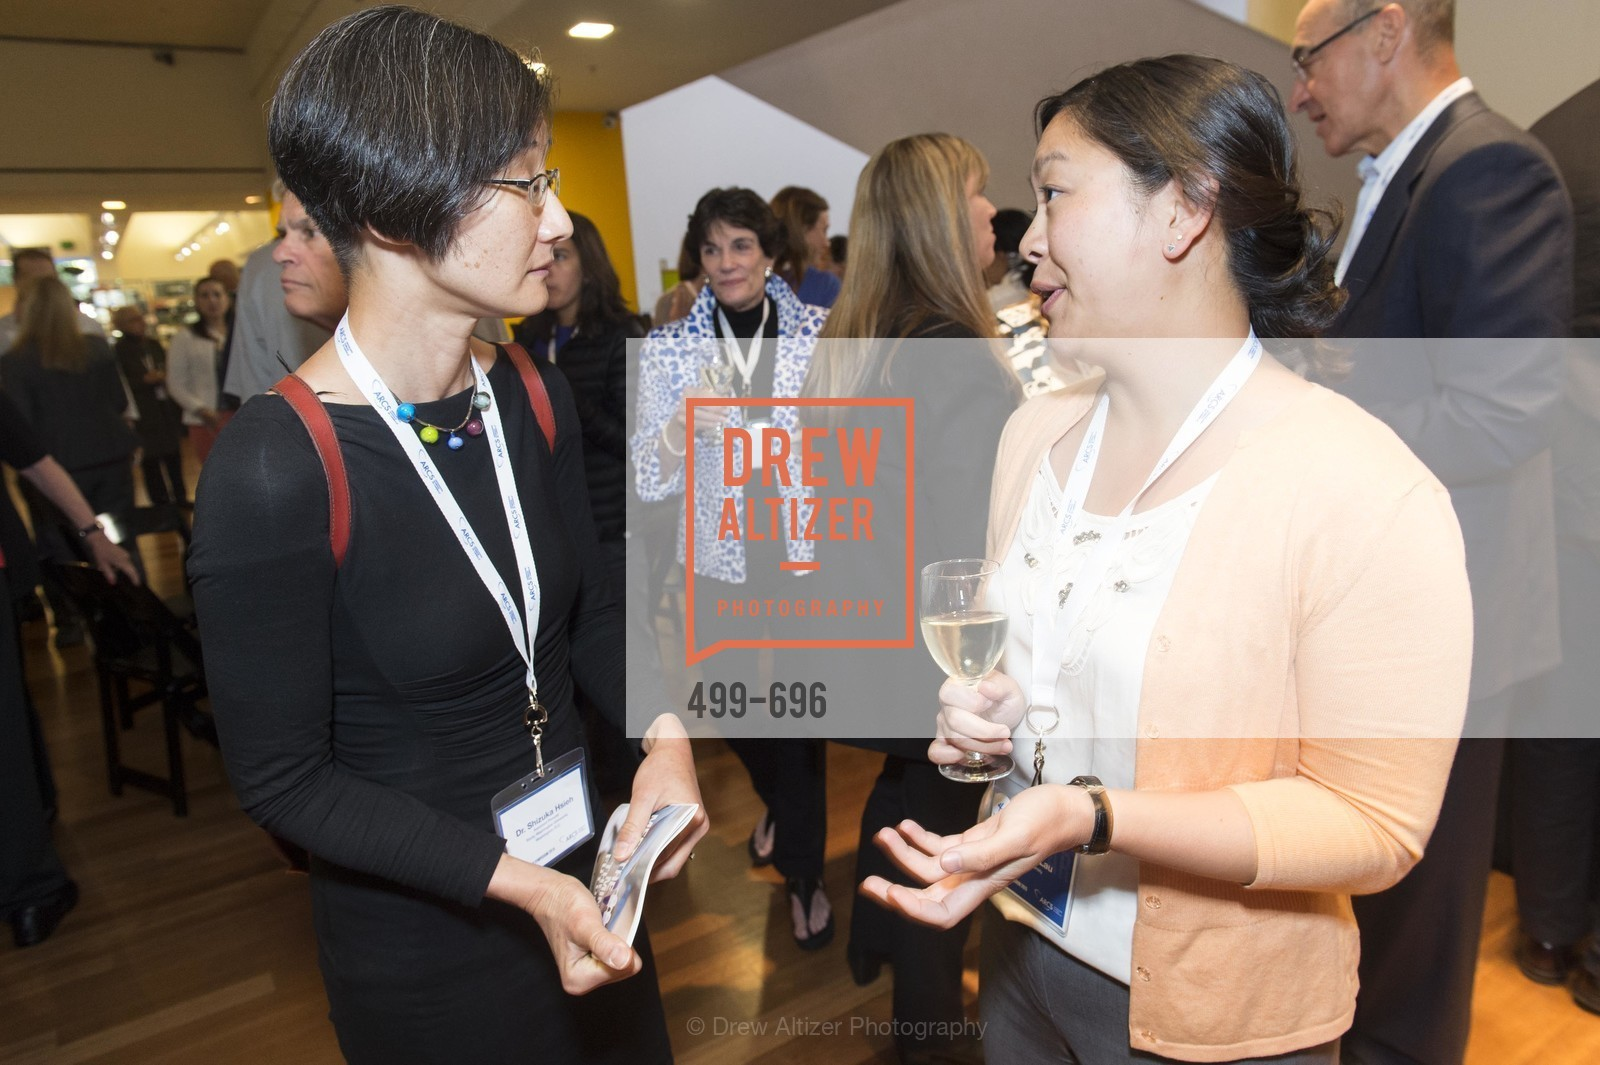 Shizuka Hsieh, Kimberly Lau, ARCS FOUNDATION Scholar Symposium, US, May 4th, 2015,Drew Altizer, Drew Altizer Photography, full-service agency, private events, San Francisco photographer, photographer california